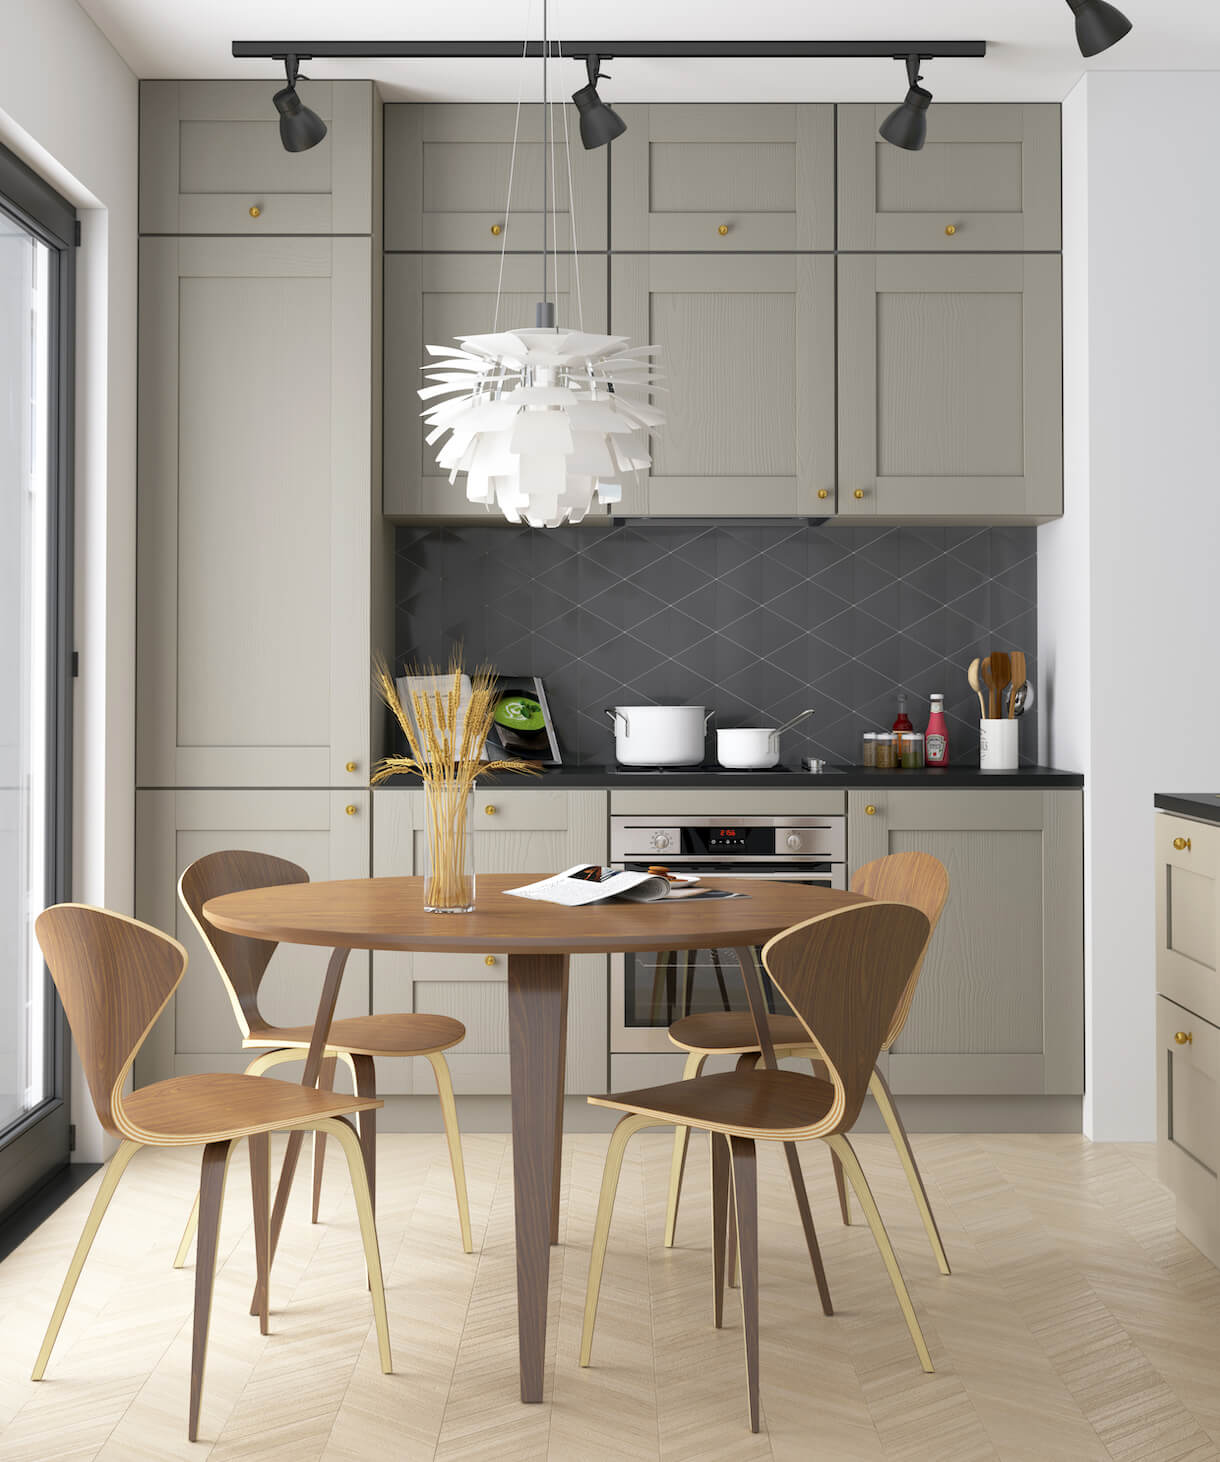 Classic Max kitchen fronts for IKEA